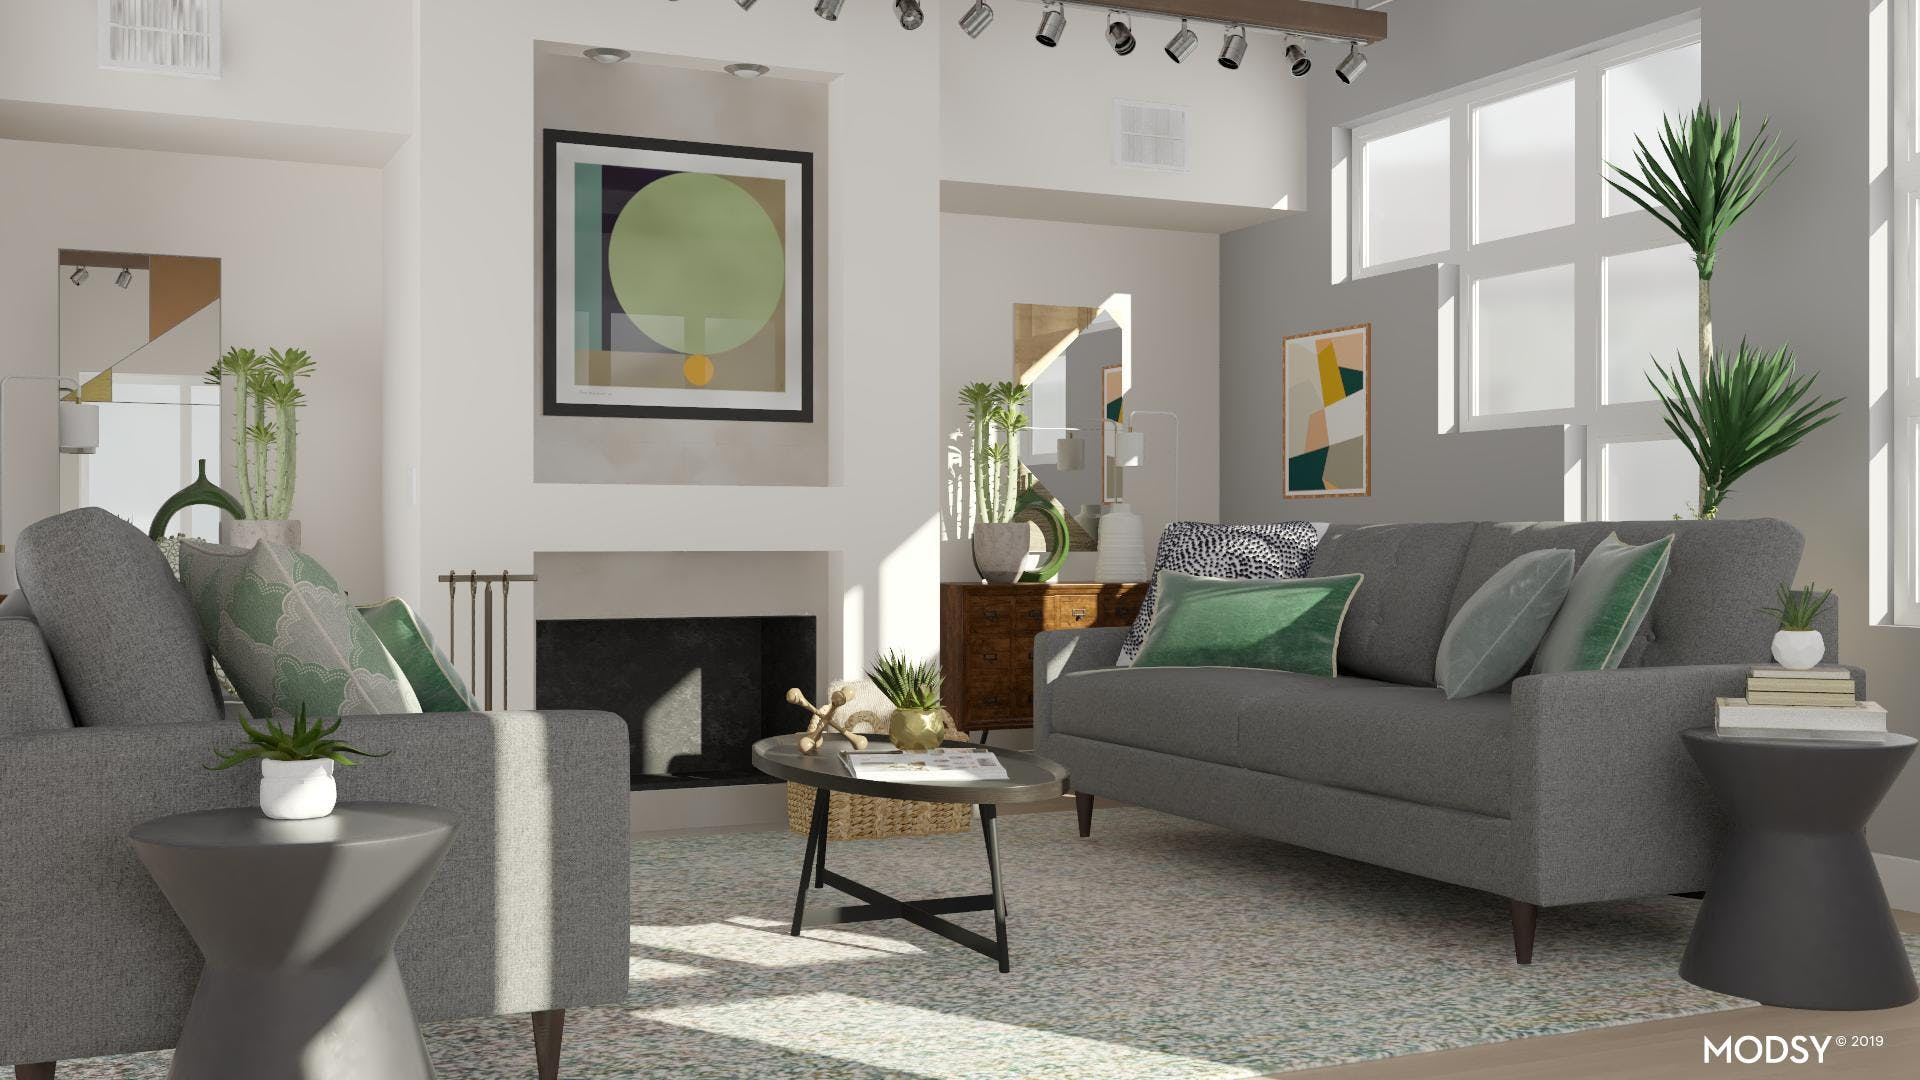 Mod Living Room with Green Touches